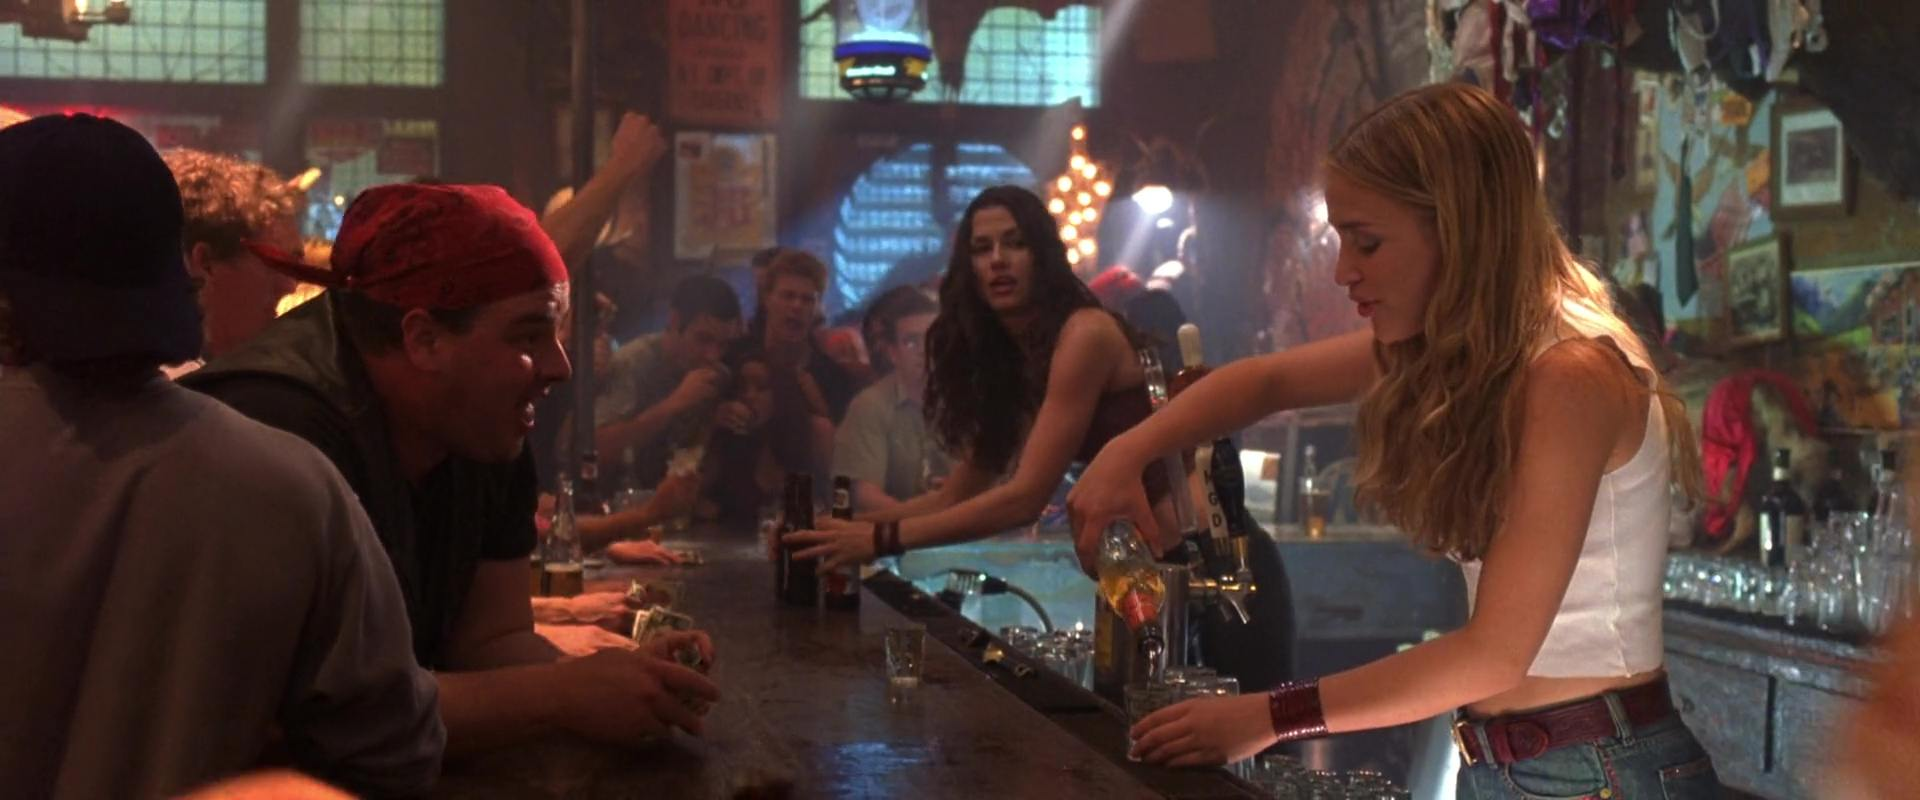 Image coyote girls ugly disney touchstone